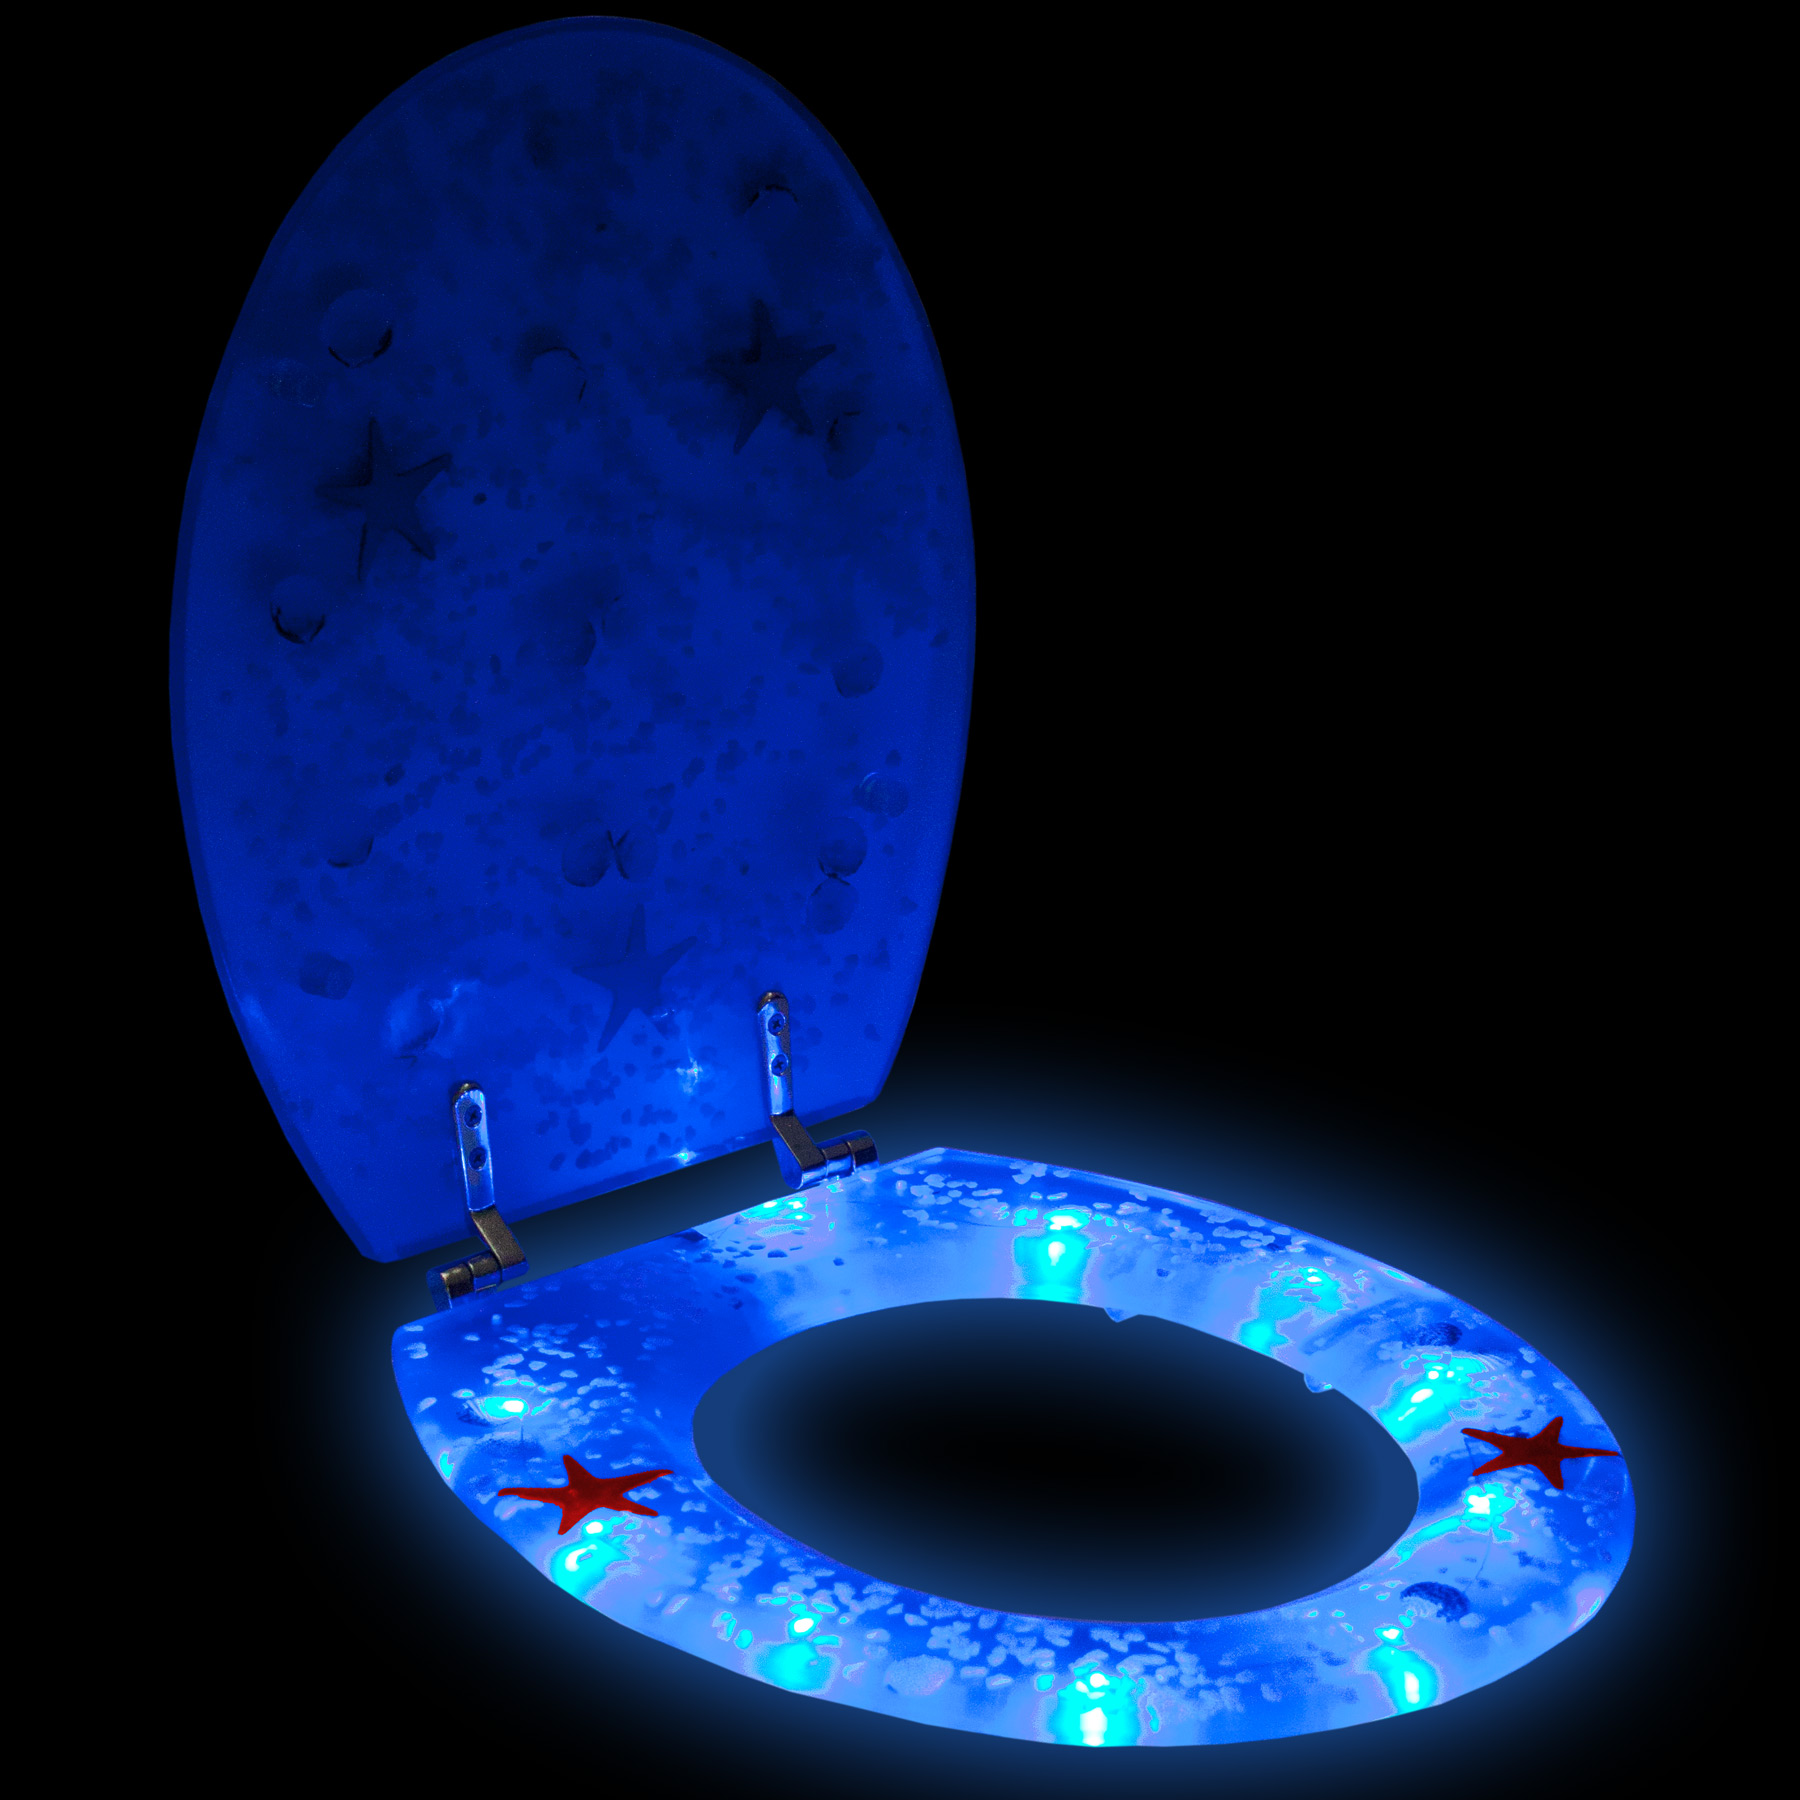 led toilet cover 3d lavatory seat toilet seat toilet seat cover toilet cover ebay. Black Bedroom Furniture Sets. Home Design Ideas